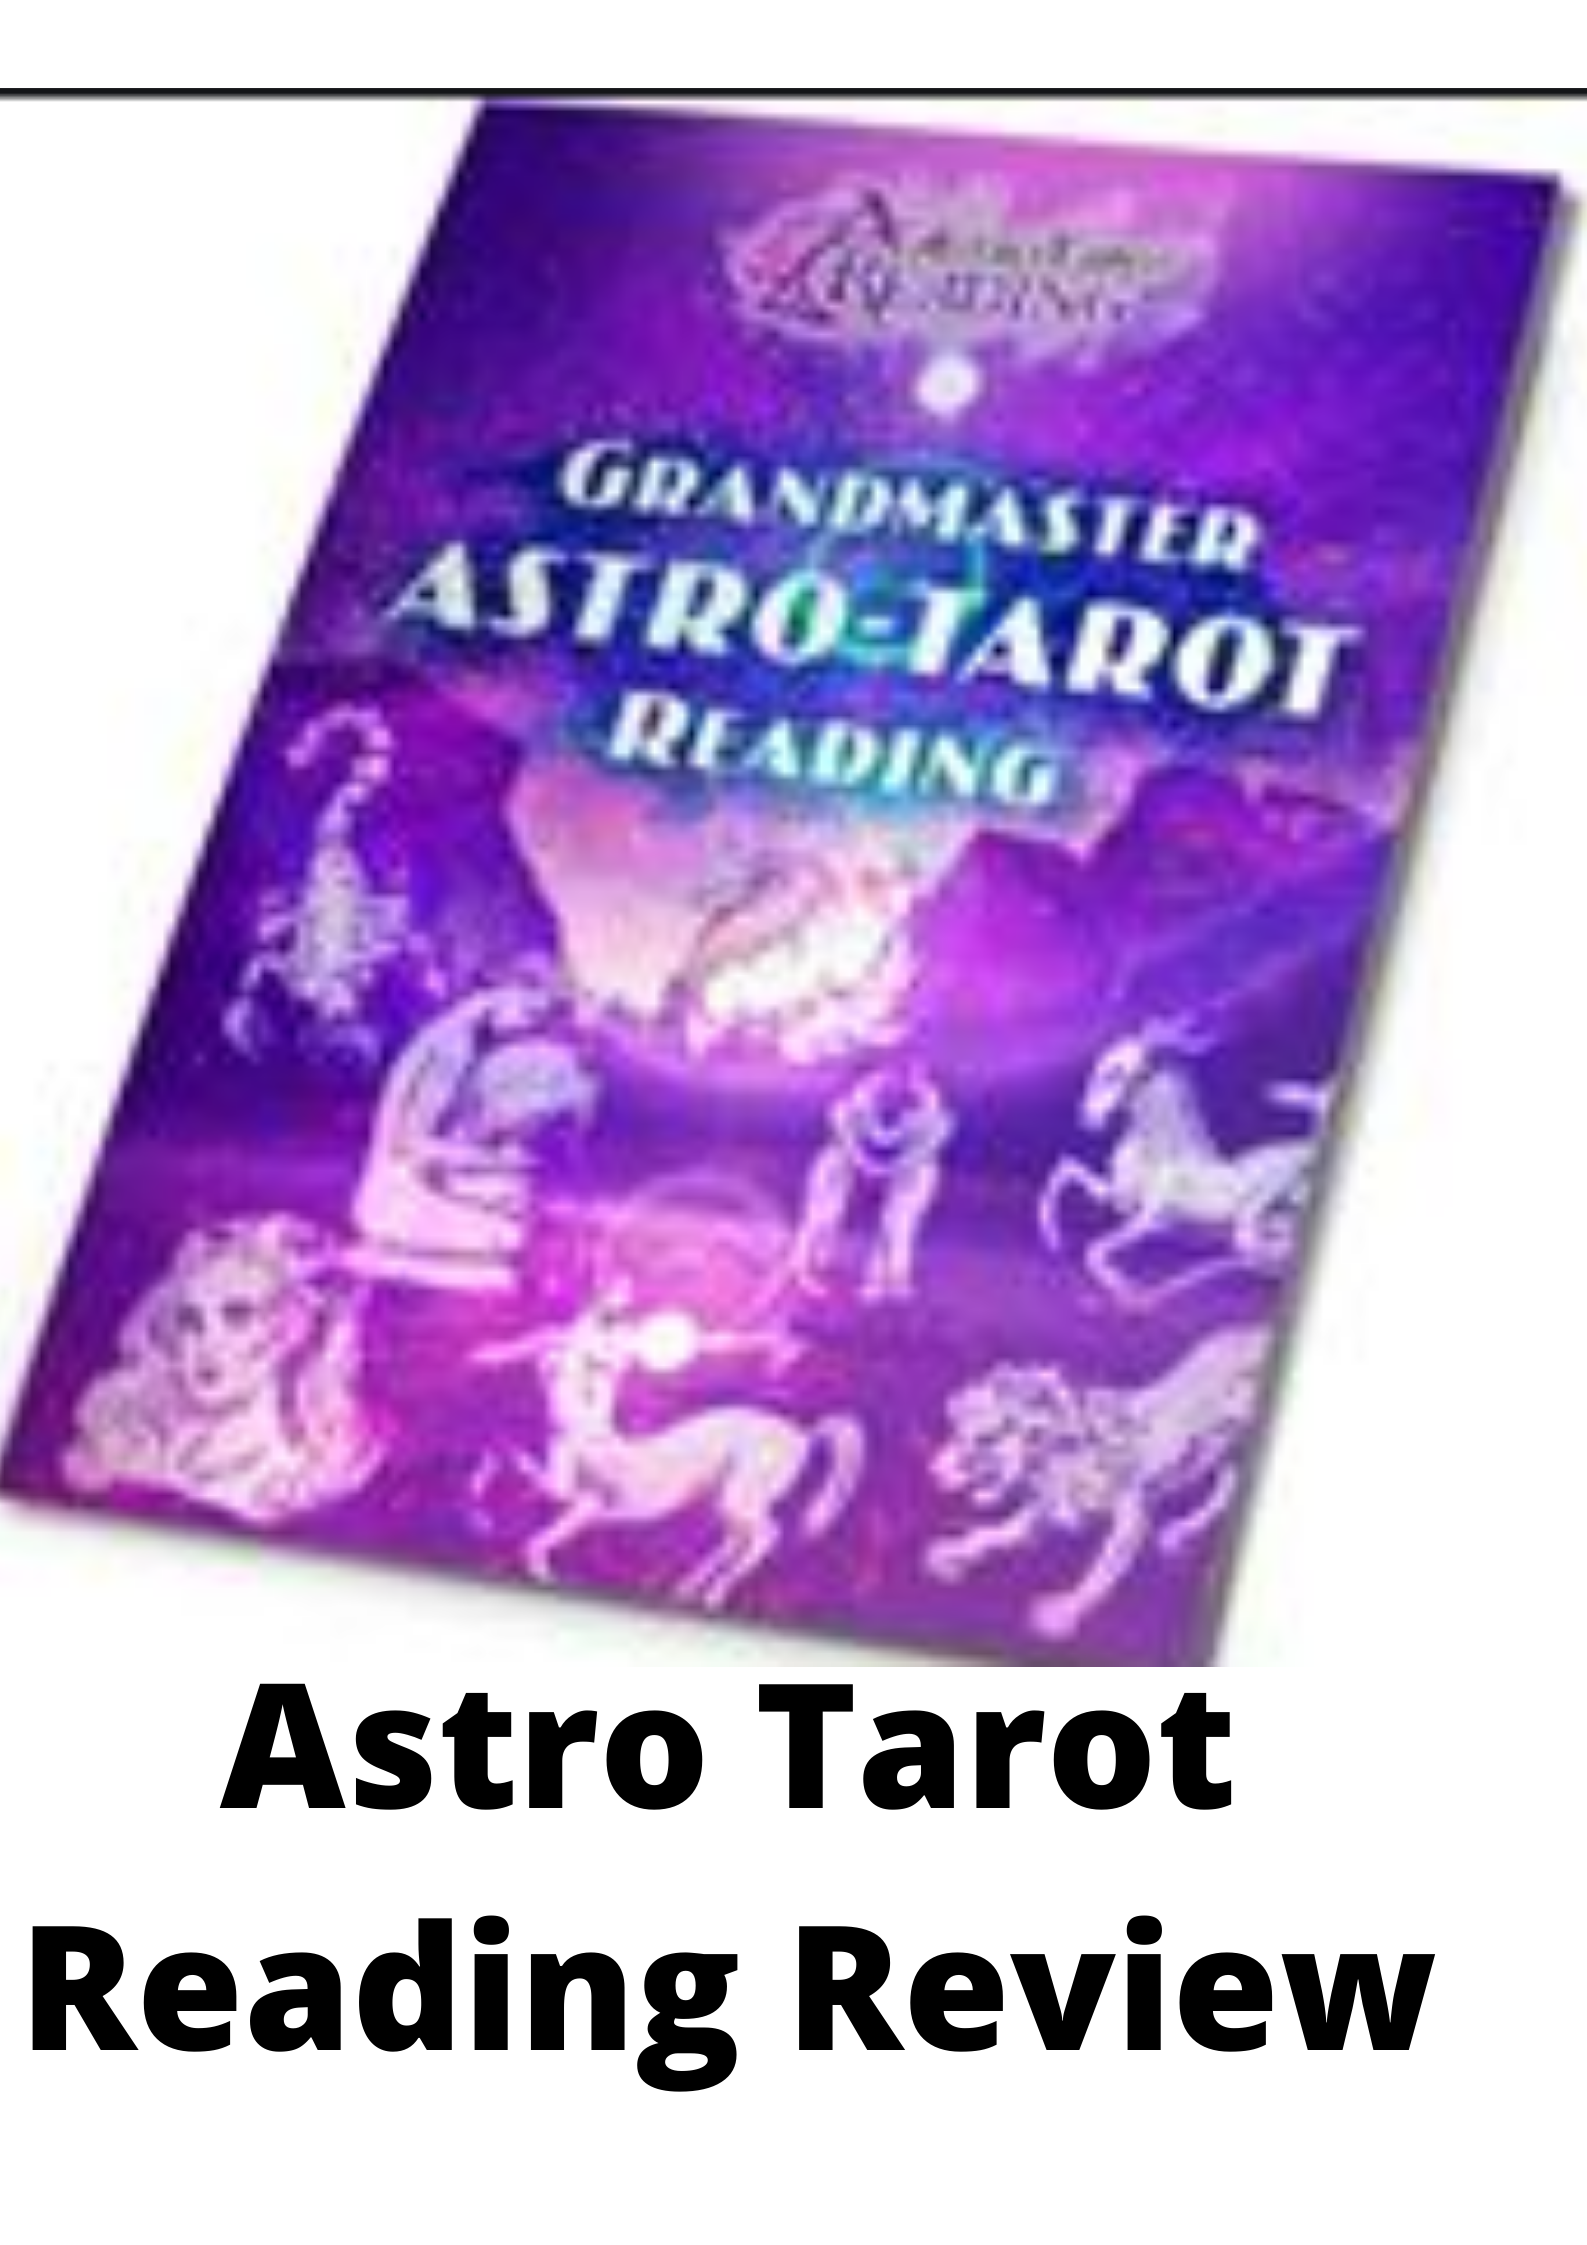 Astro Tarot Reading Review- Scam discovered